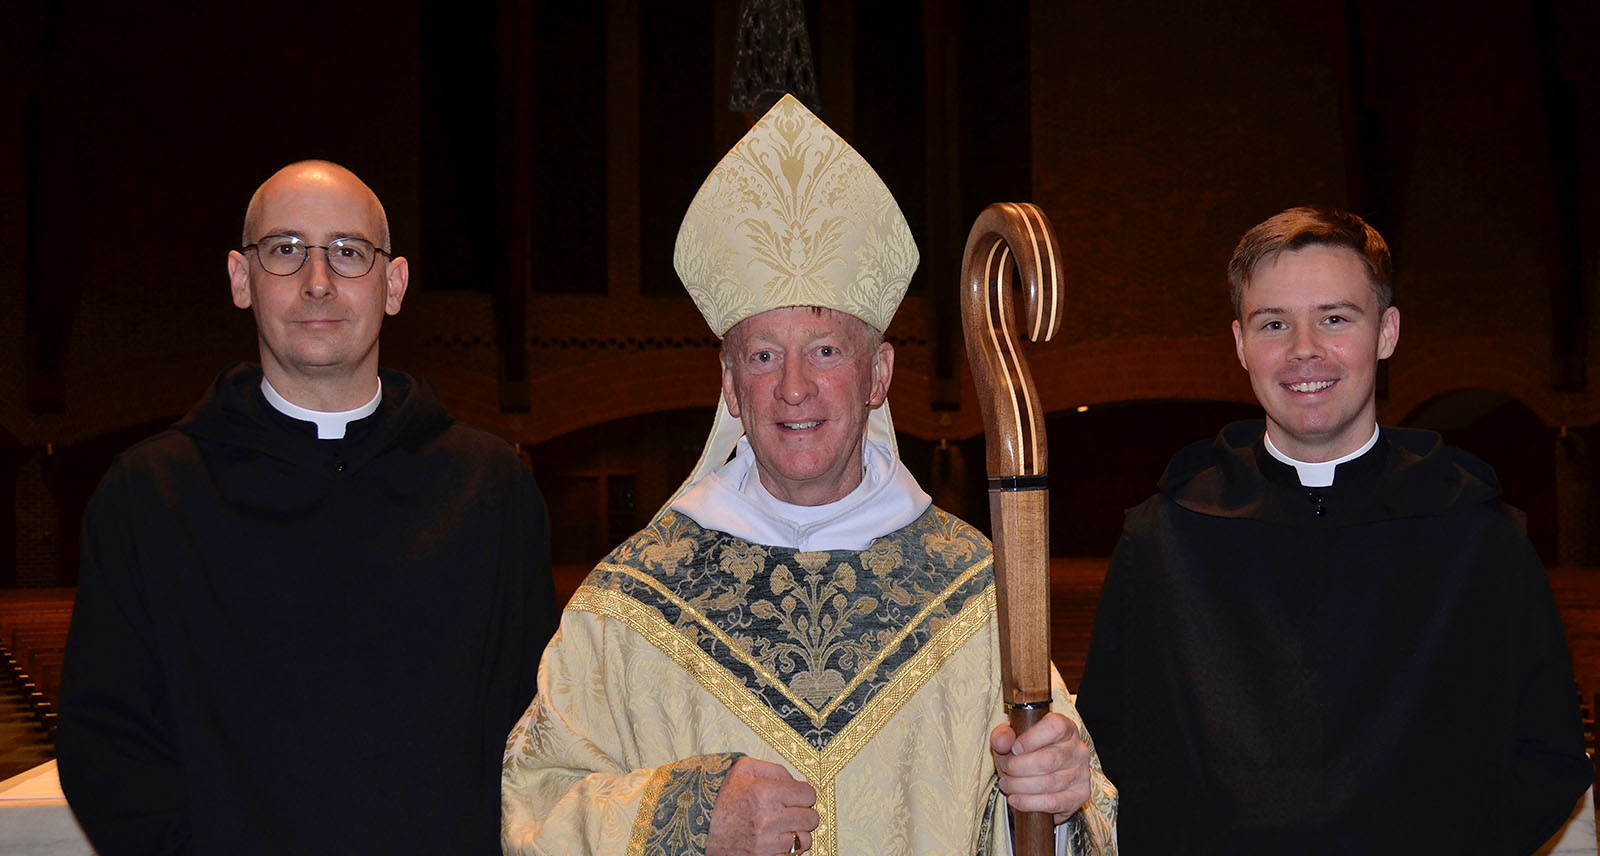 Brother Titus and Brother Dunstan with Abbot Mark